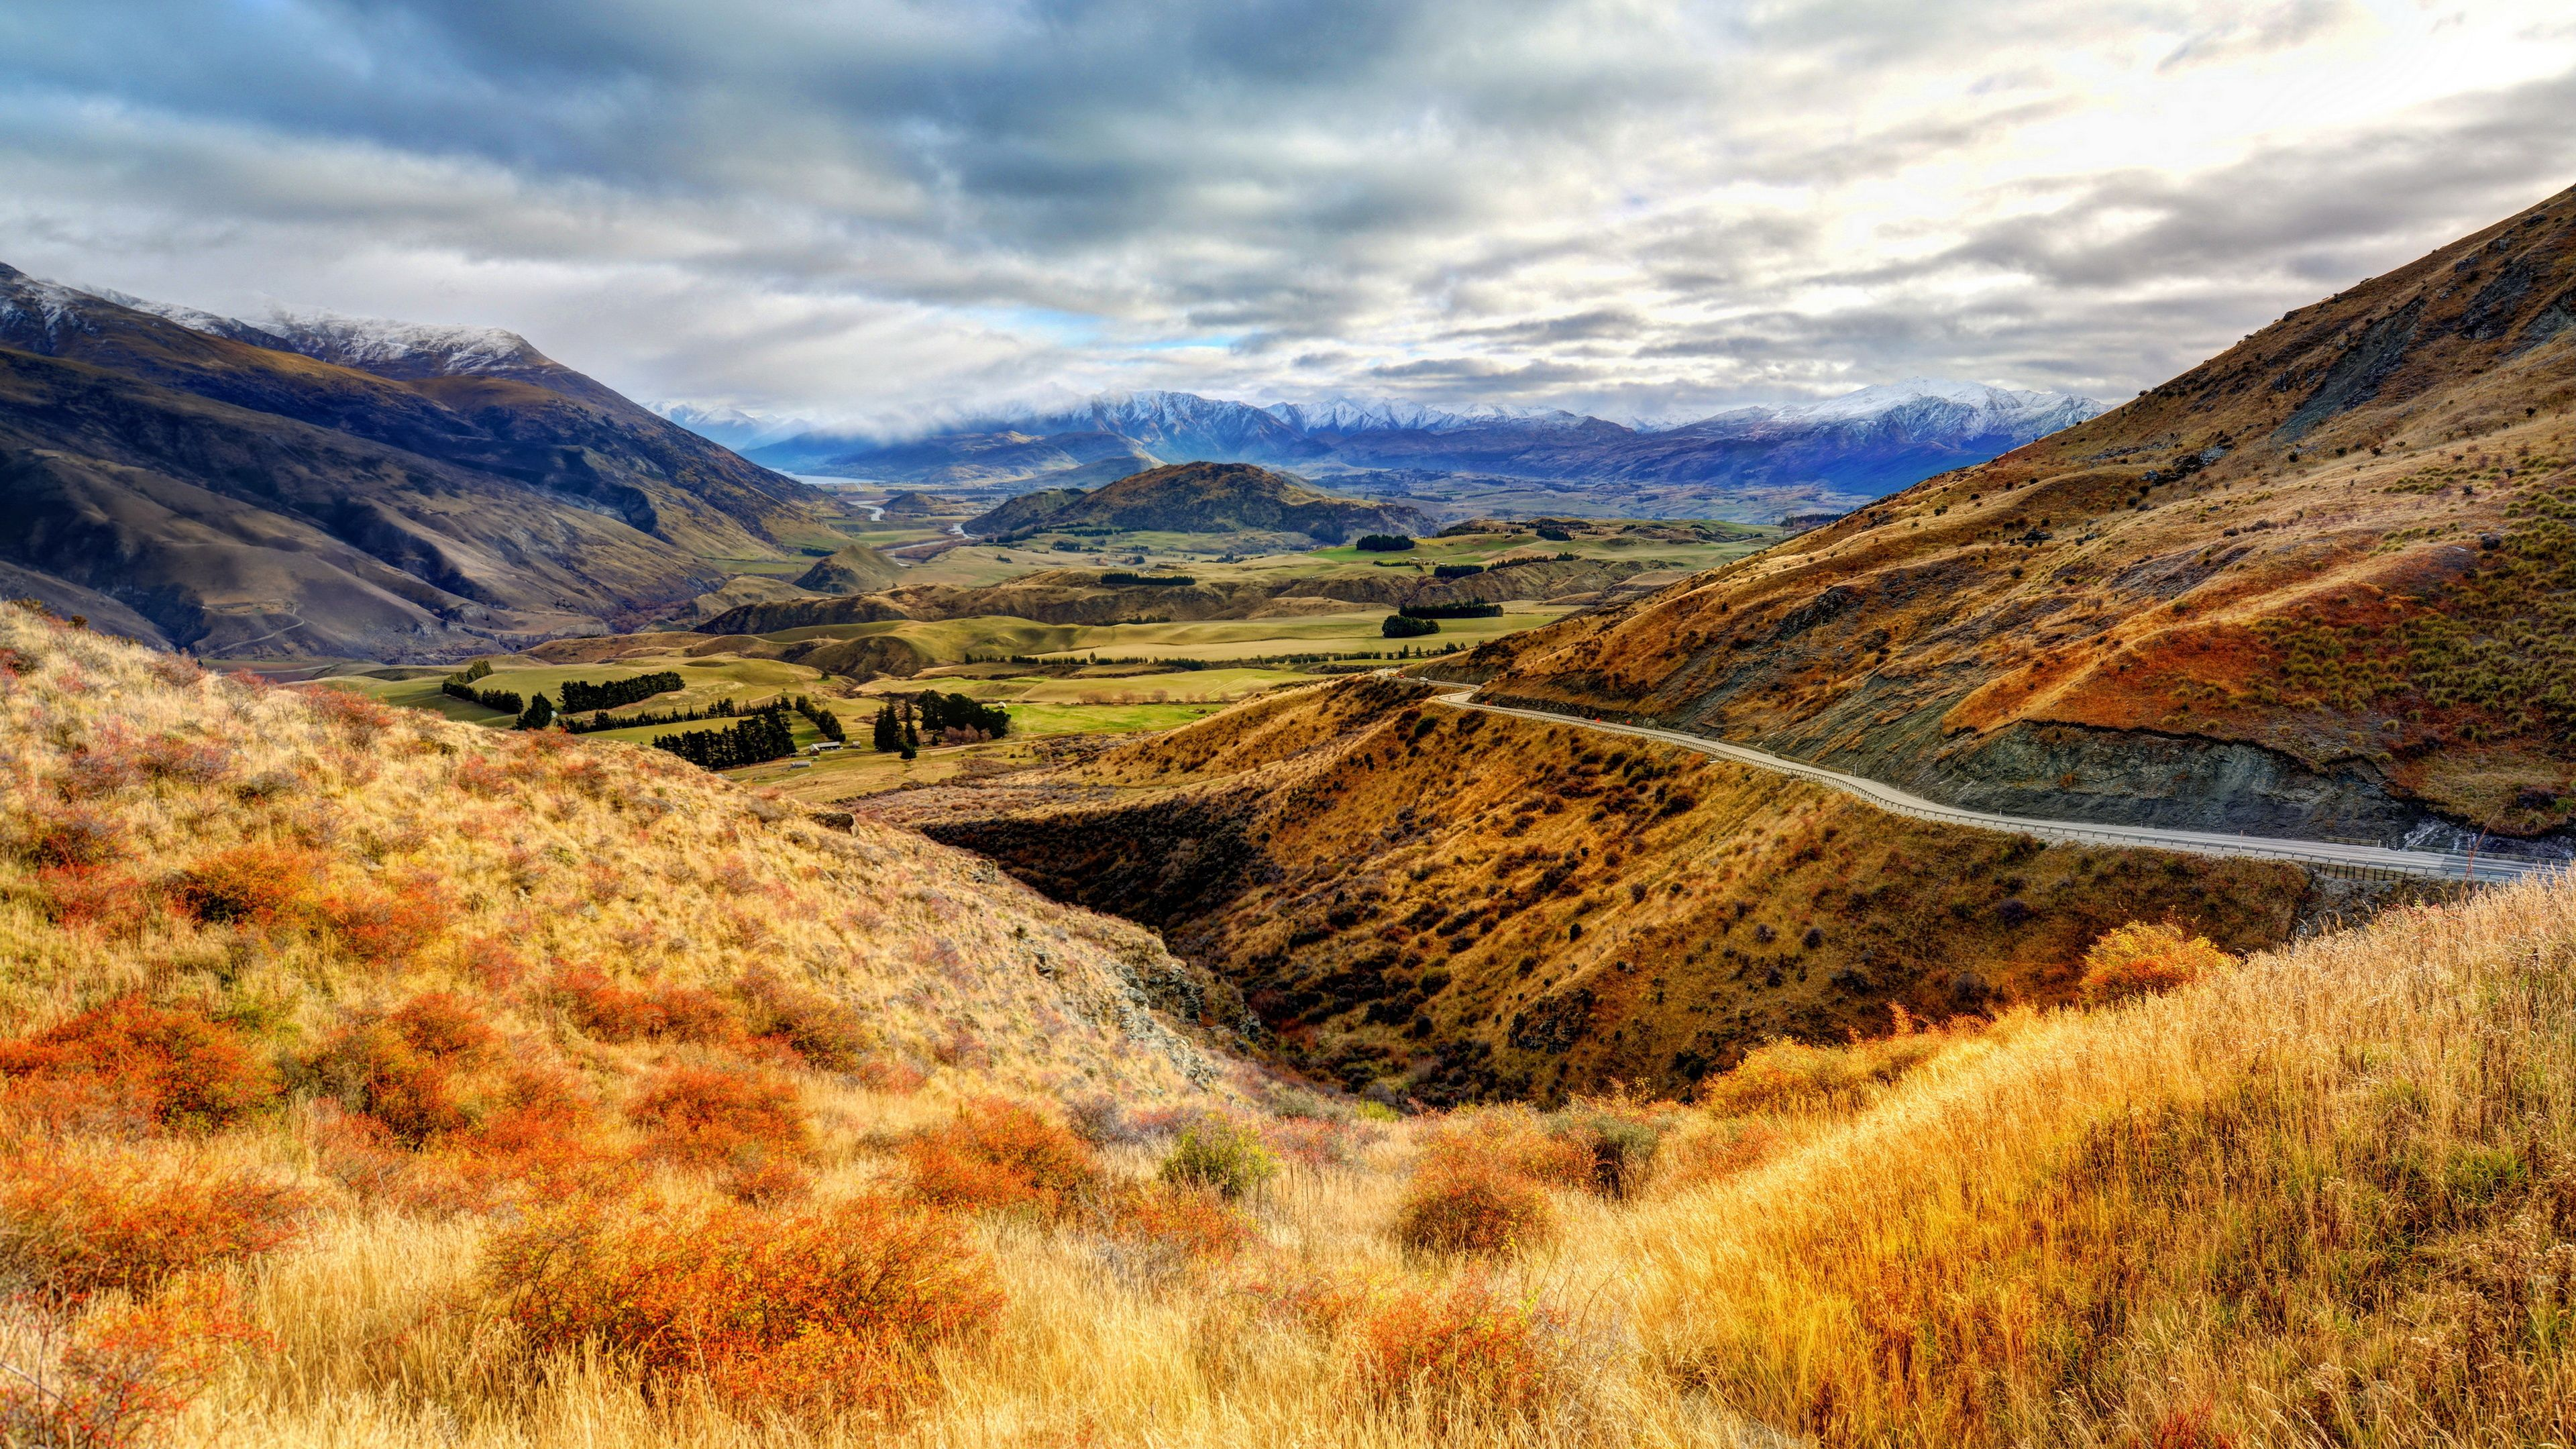 4k Scenery Photos Hd Pictures 4 New Zealand Landscape Scenery Photos Queenstown